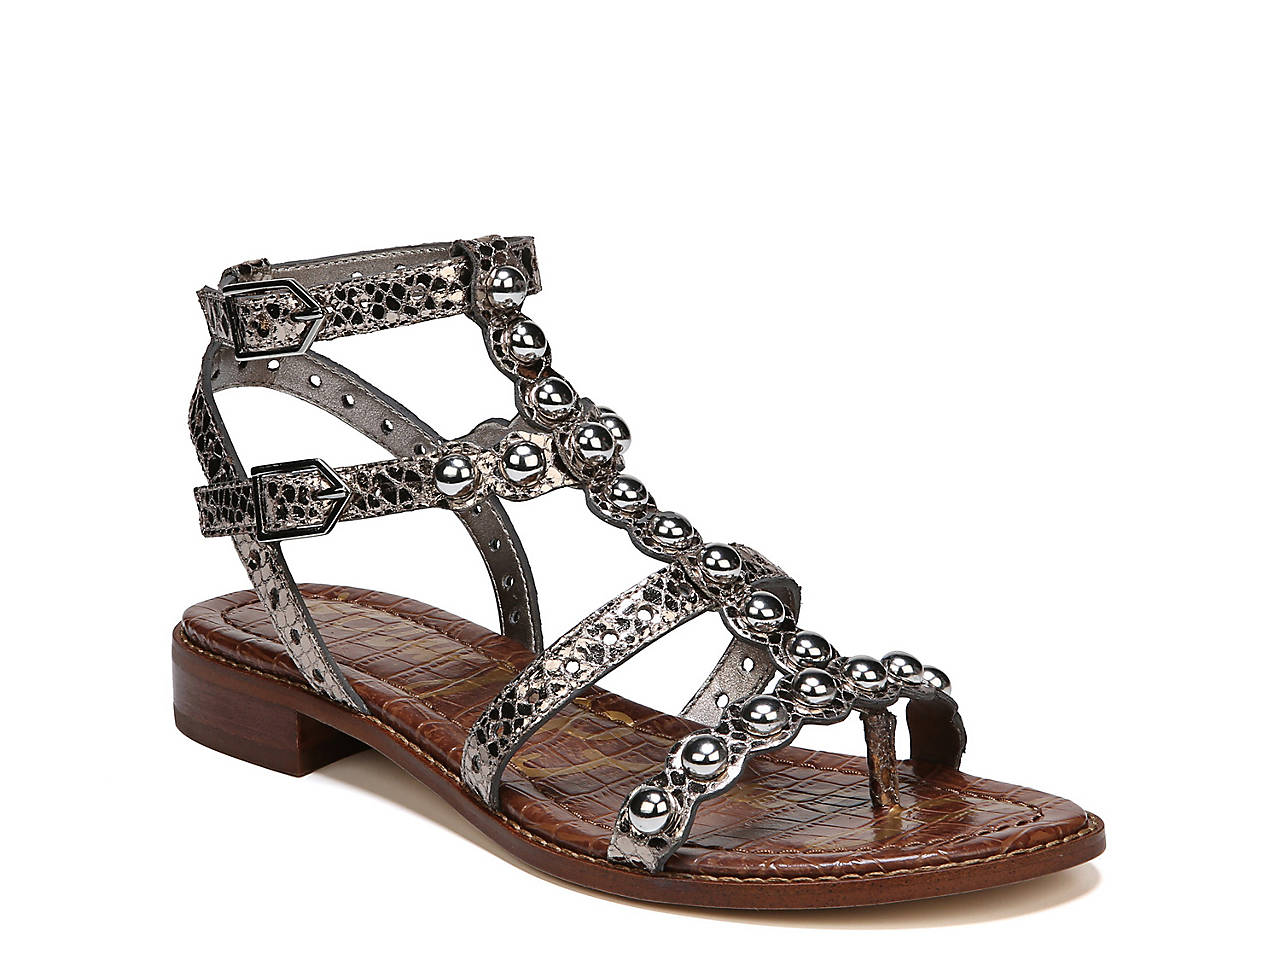 d59feff0b Sam Edelman Elisa Gladiator Sandal Women s Shoes